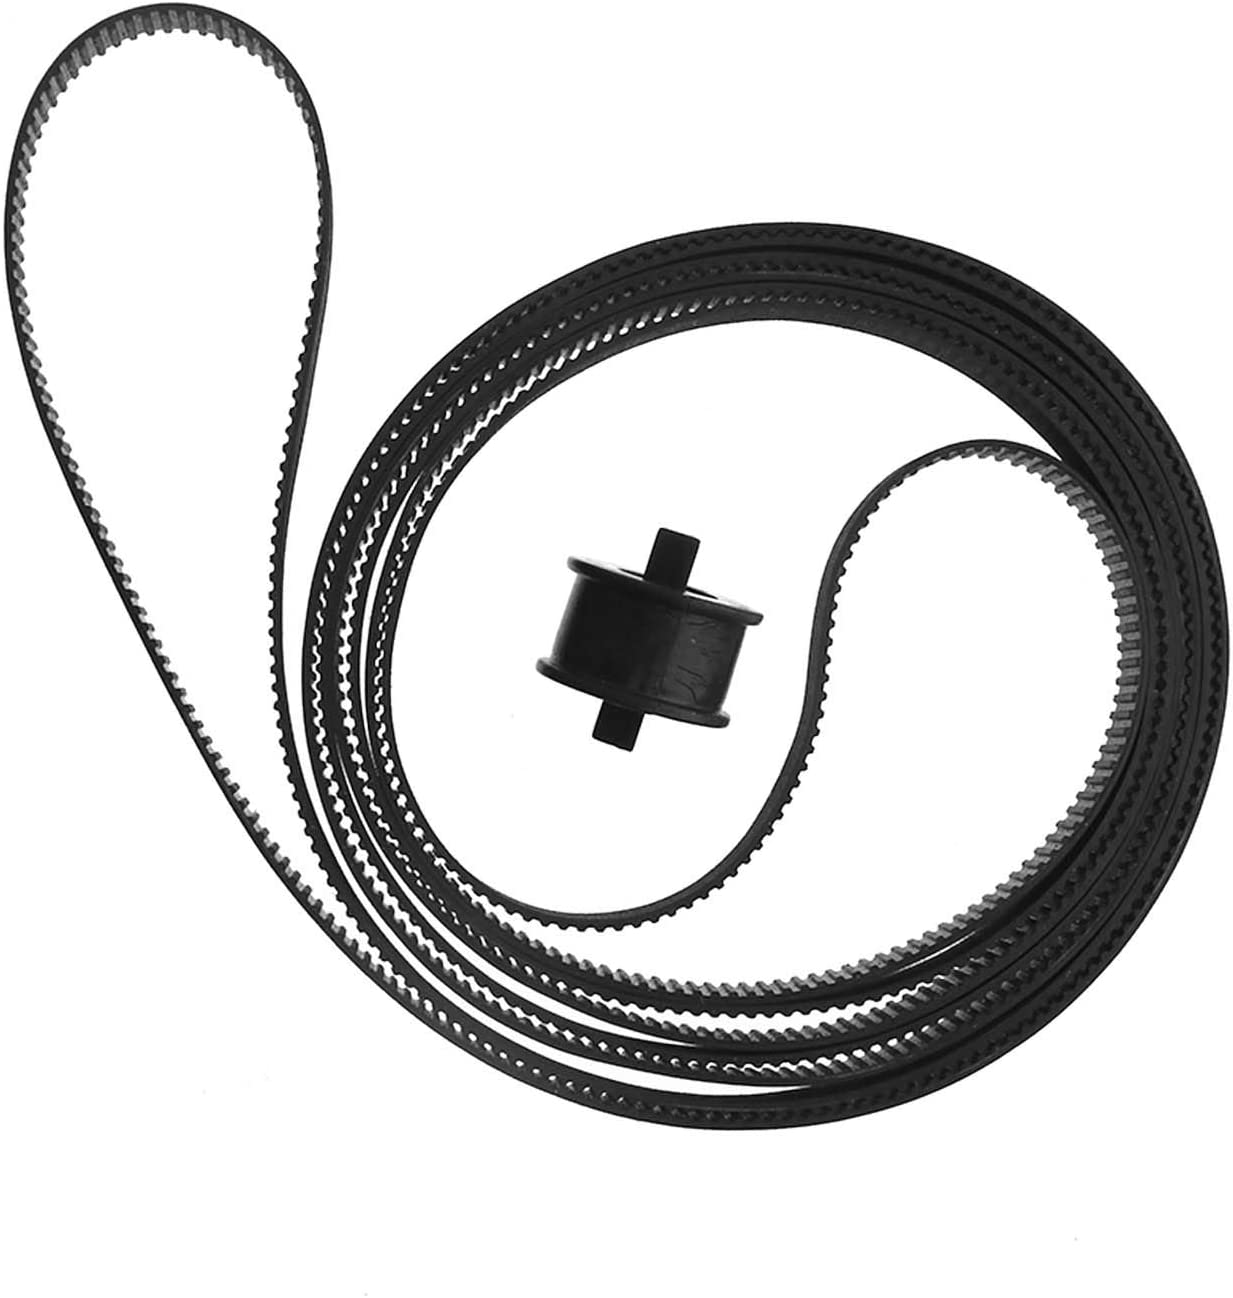 42 Carriage Direct sale of manufacturer Drive Belt and Pulley Compatible DesignJet HP Cash special price 5 with